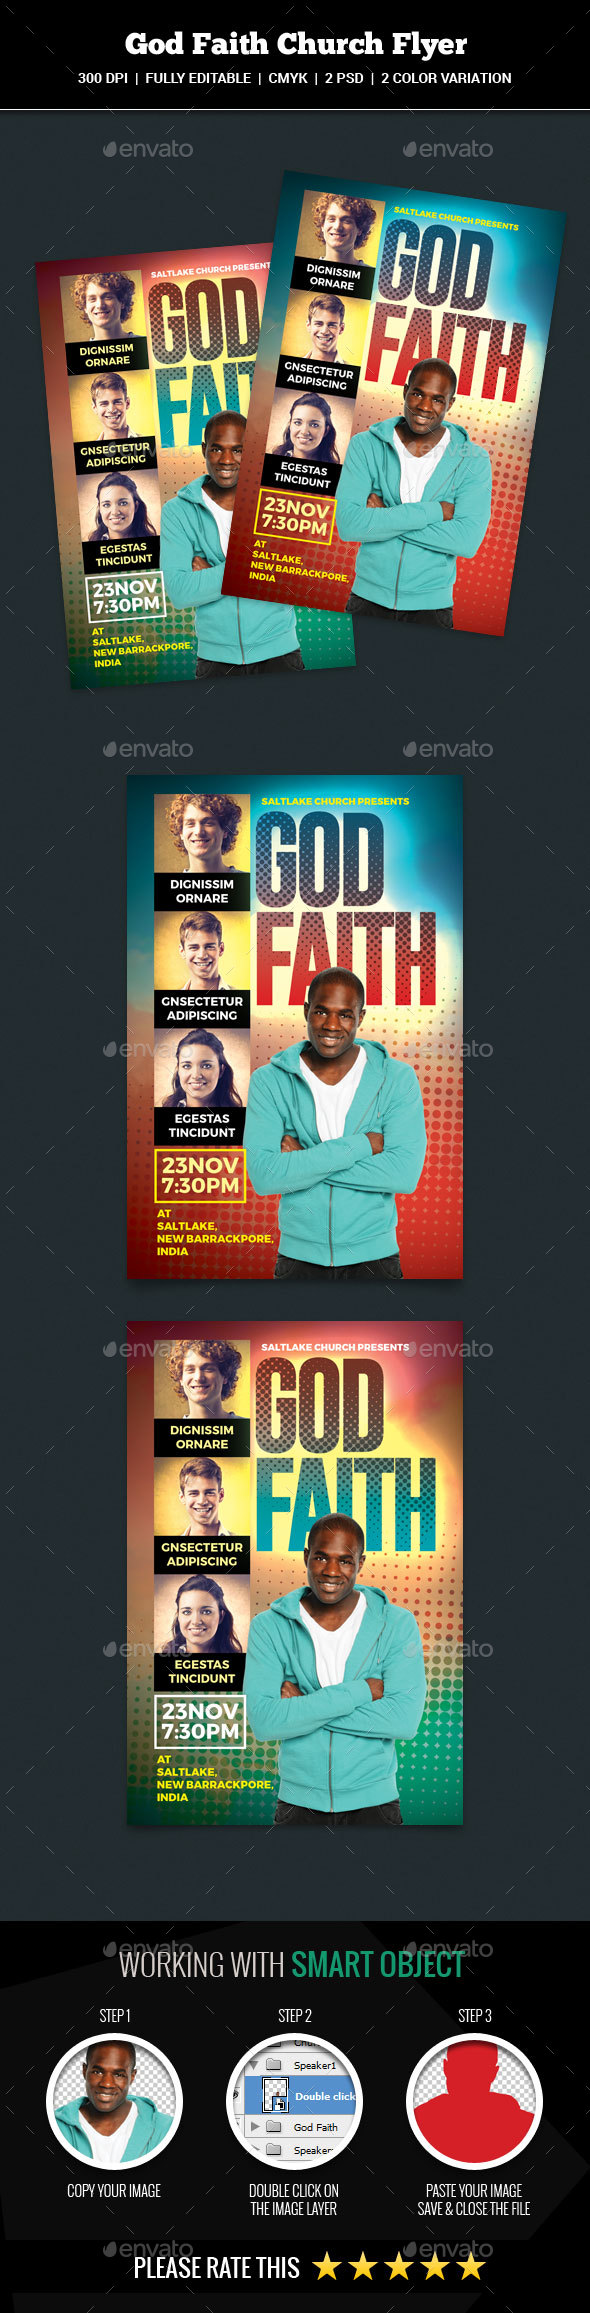 God Faith Church Flyer - Church Flyers